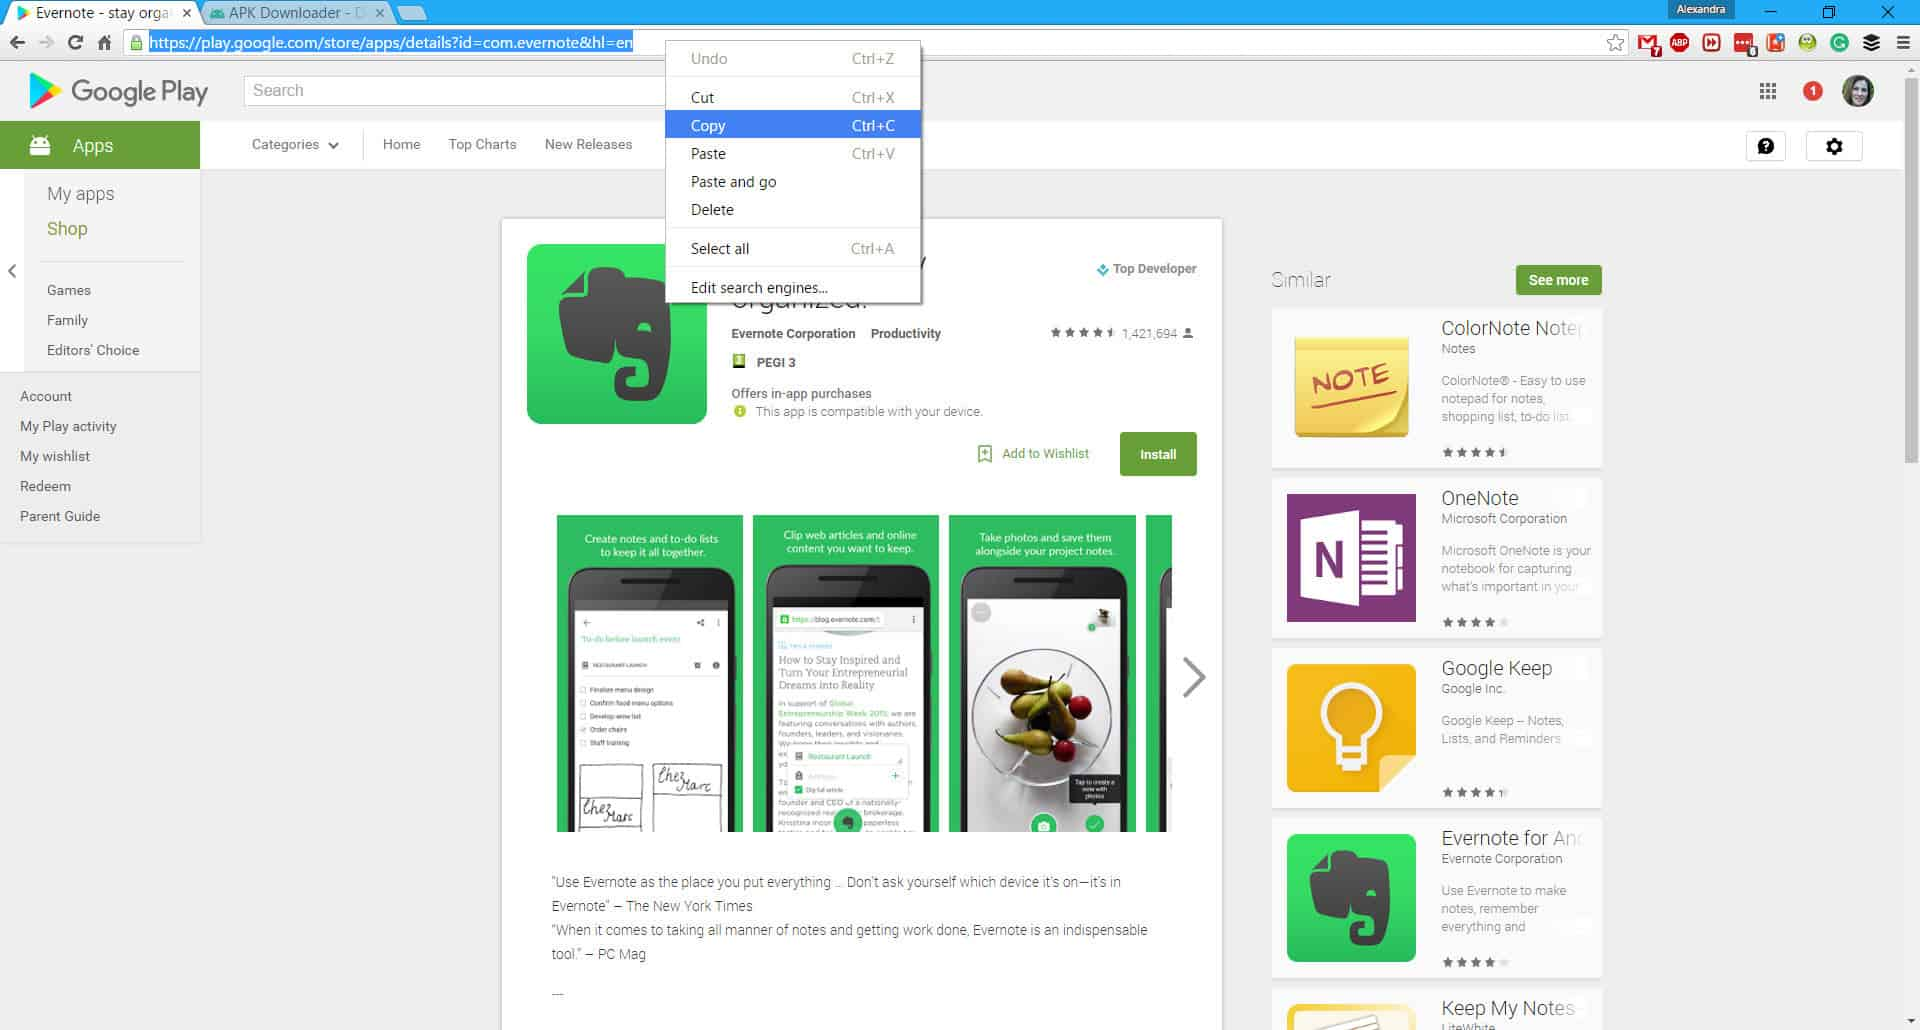 Guide] Download APK files from Play Store